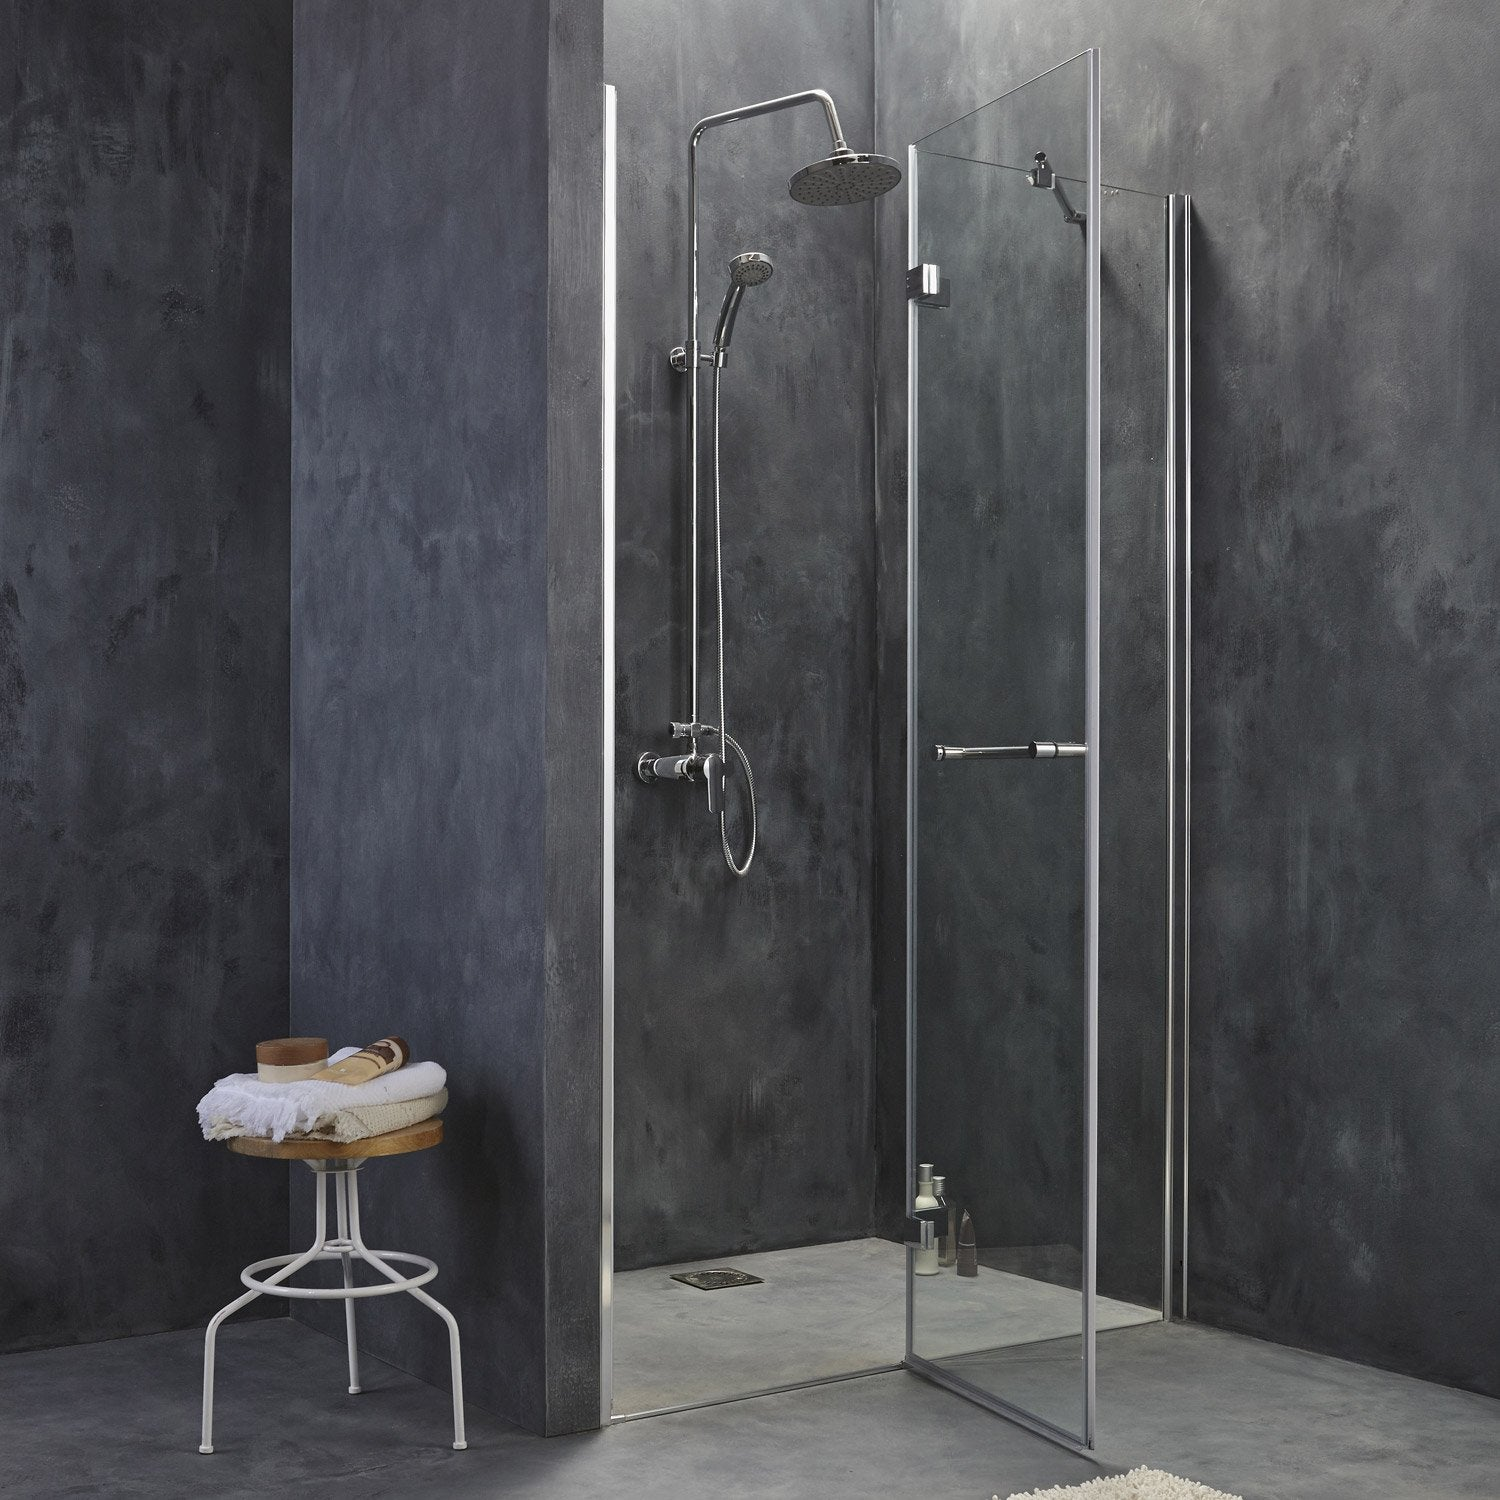 Porte de douche pivotante 120 cm transparent open2 for Leroy merlin porte douche